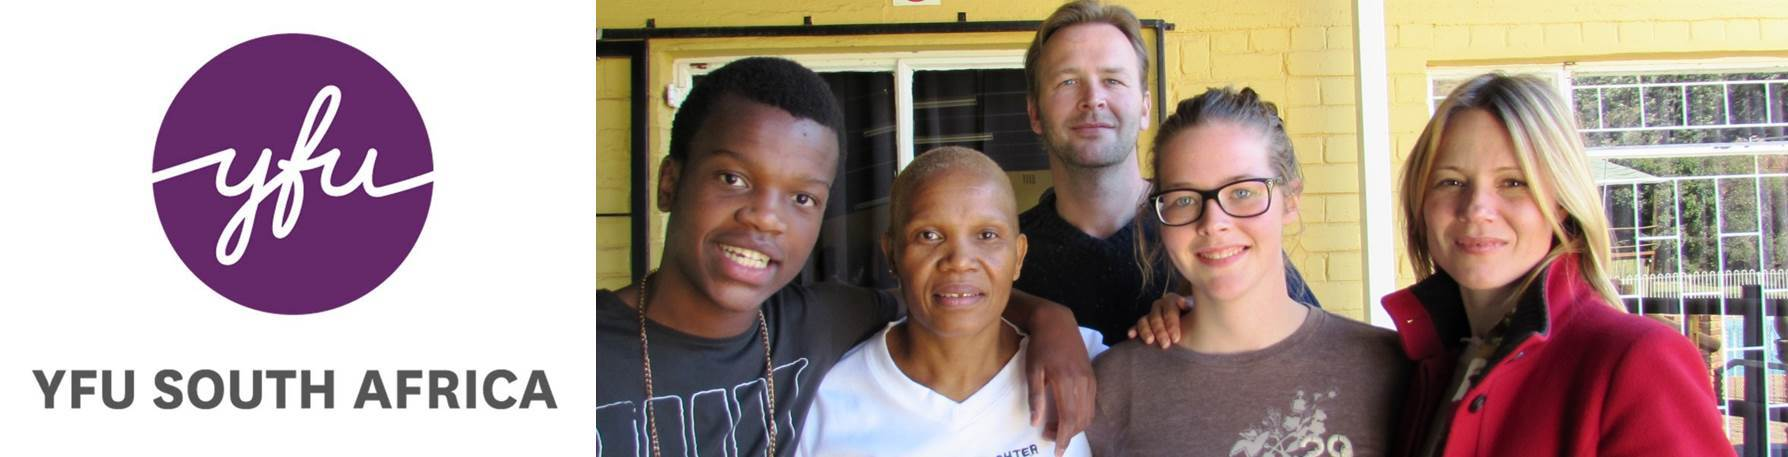 Youth for Understanding South Africa